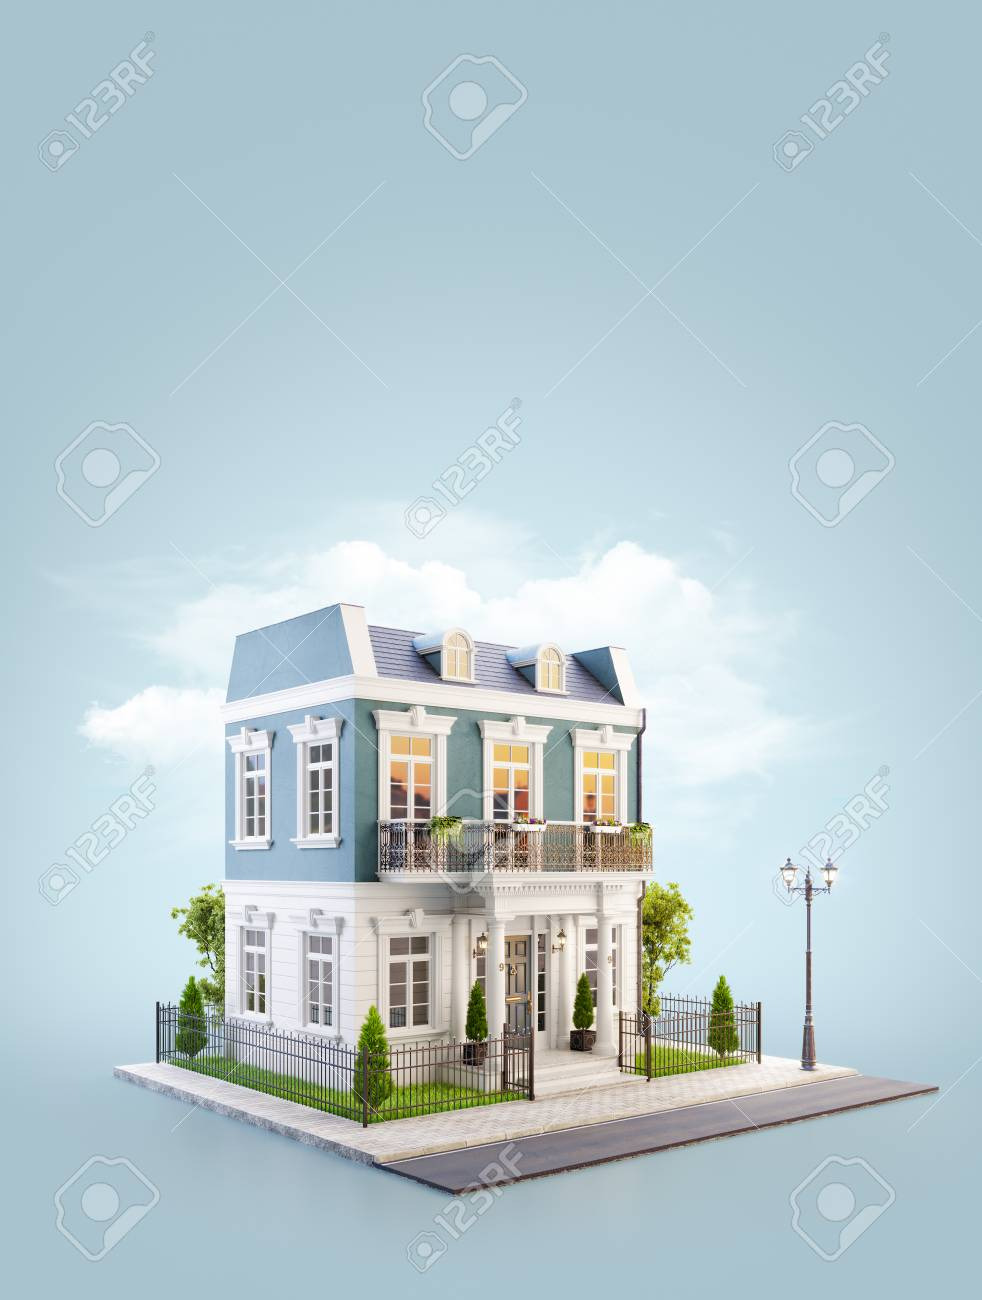 photo stock illustration unusual 3d illustration of a beautiful house with white entrance lawn and small cute garden at the r